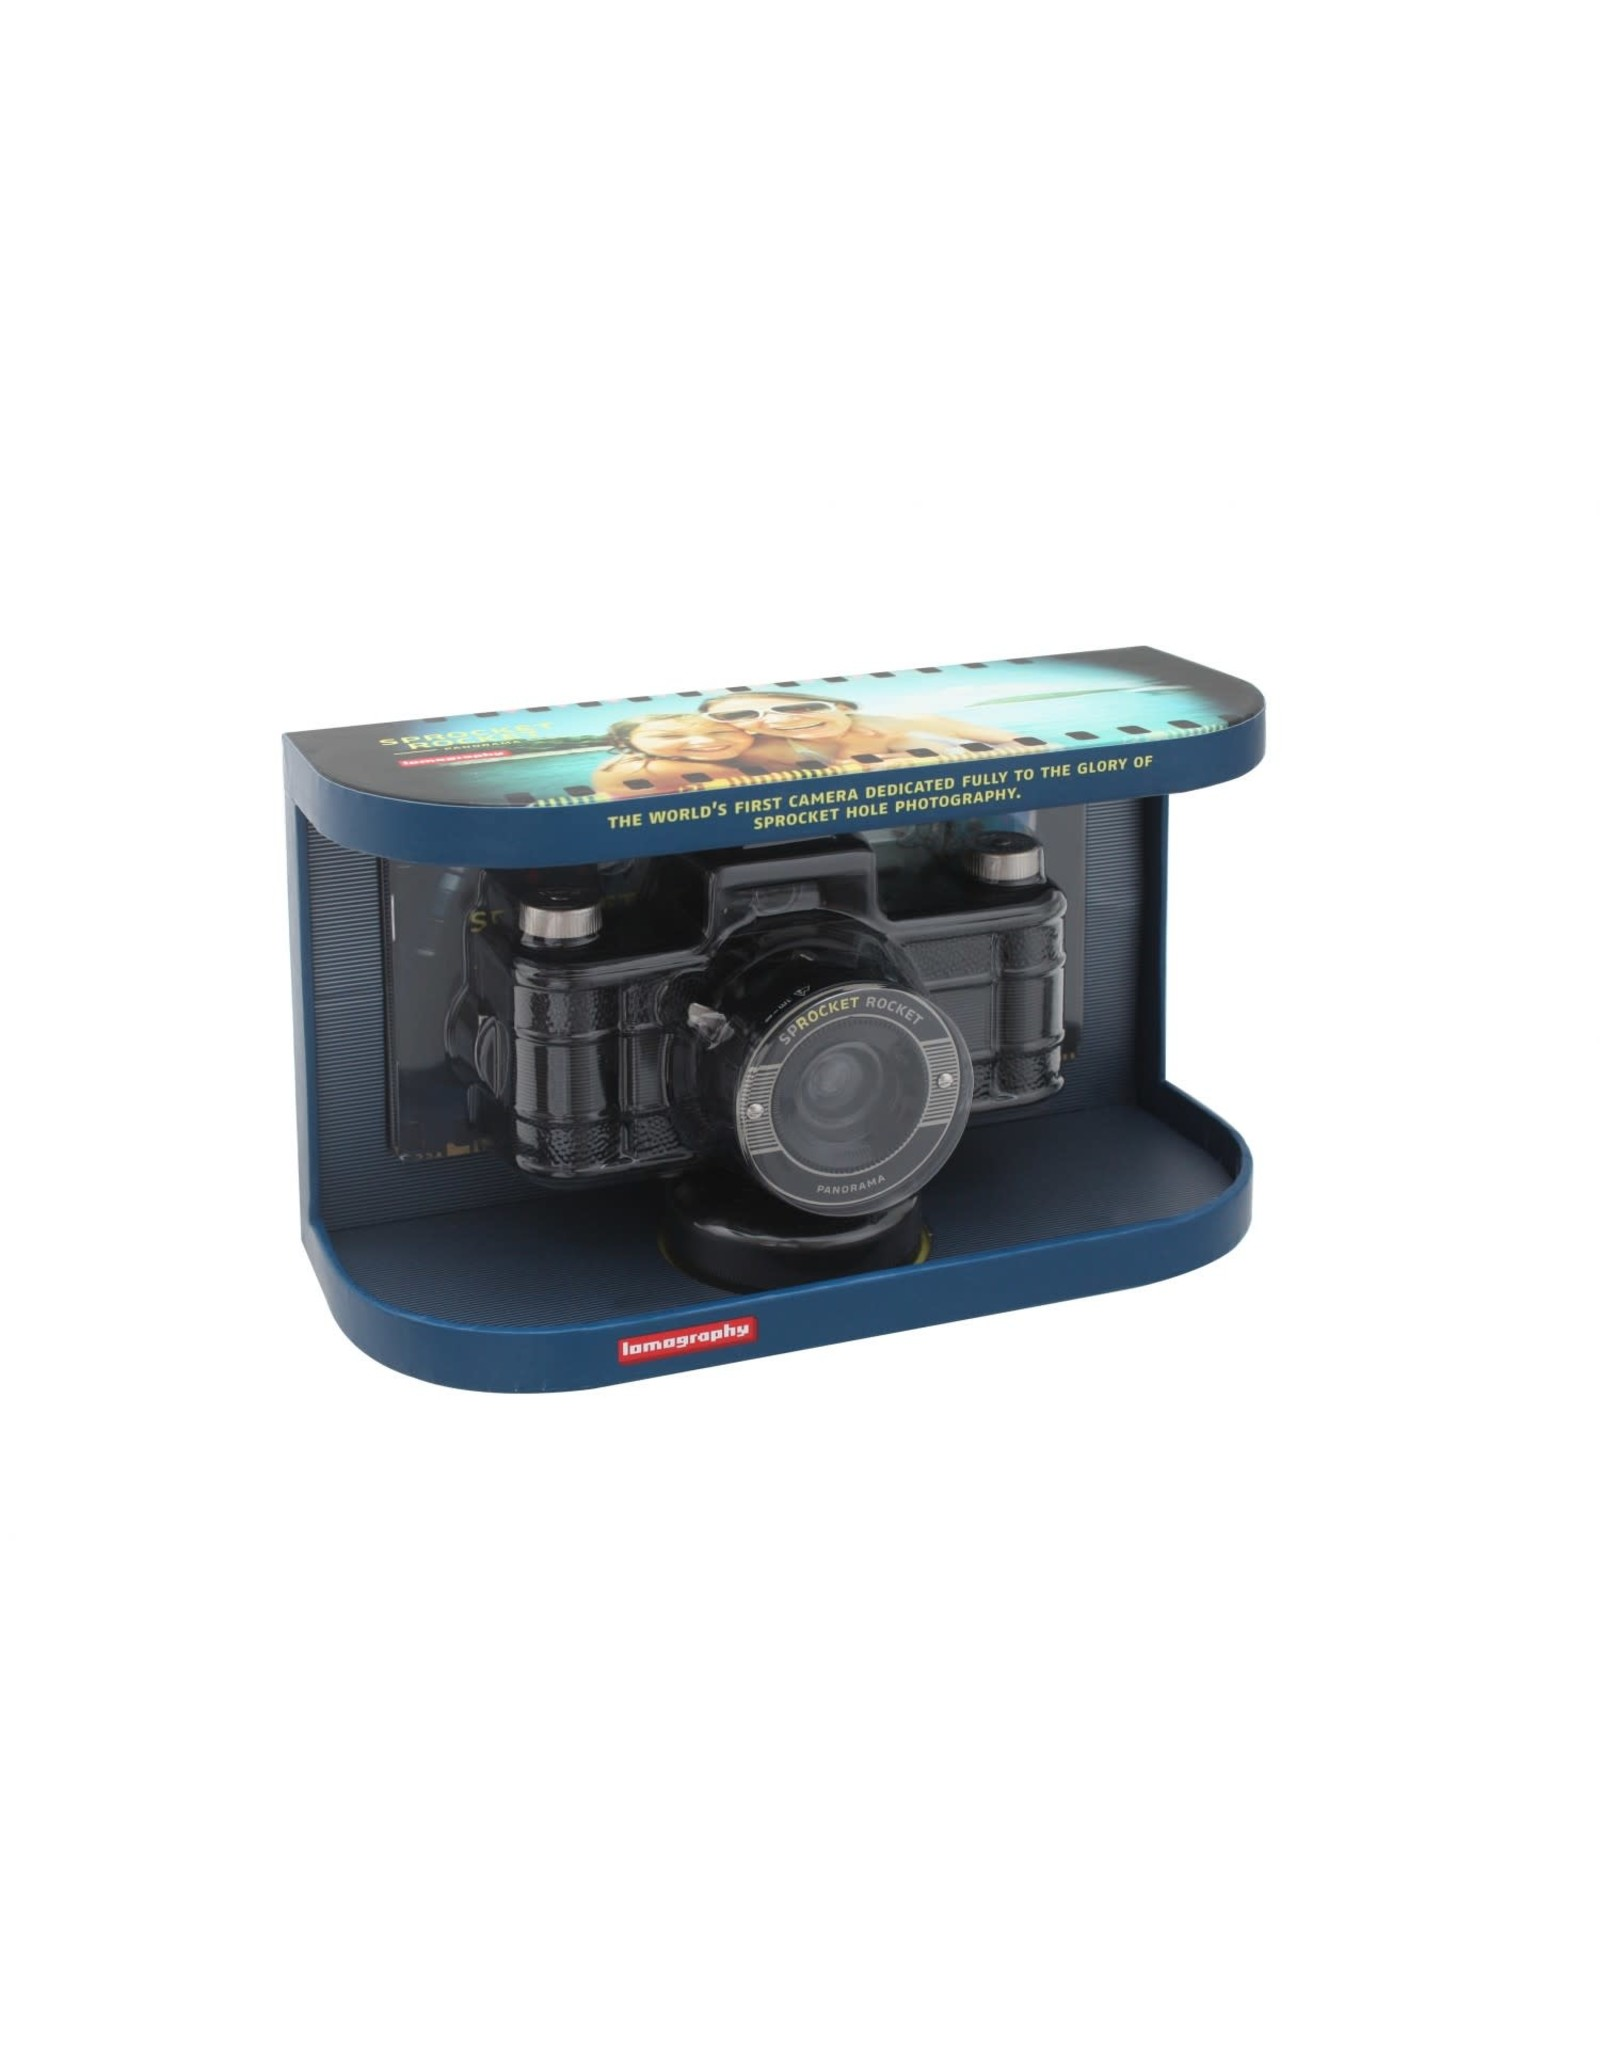 Lomography Sprocket Rocket Panoramic 35mm Camera